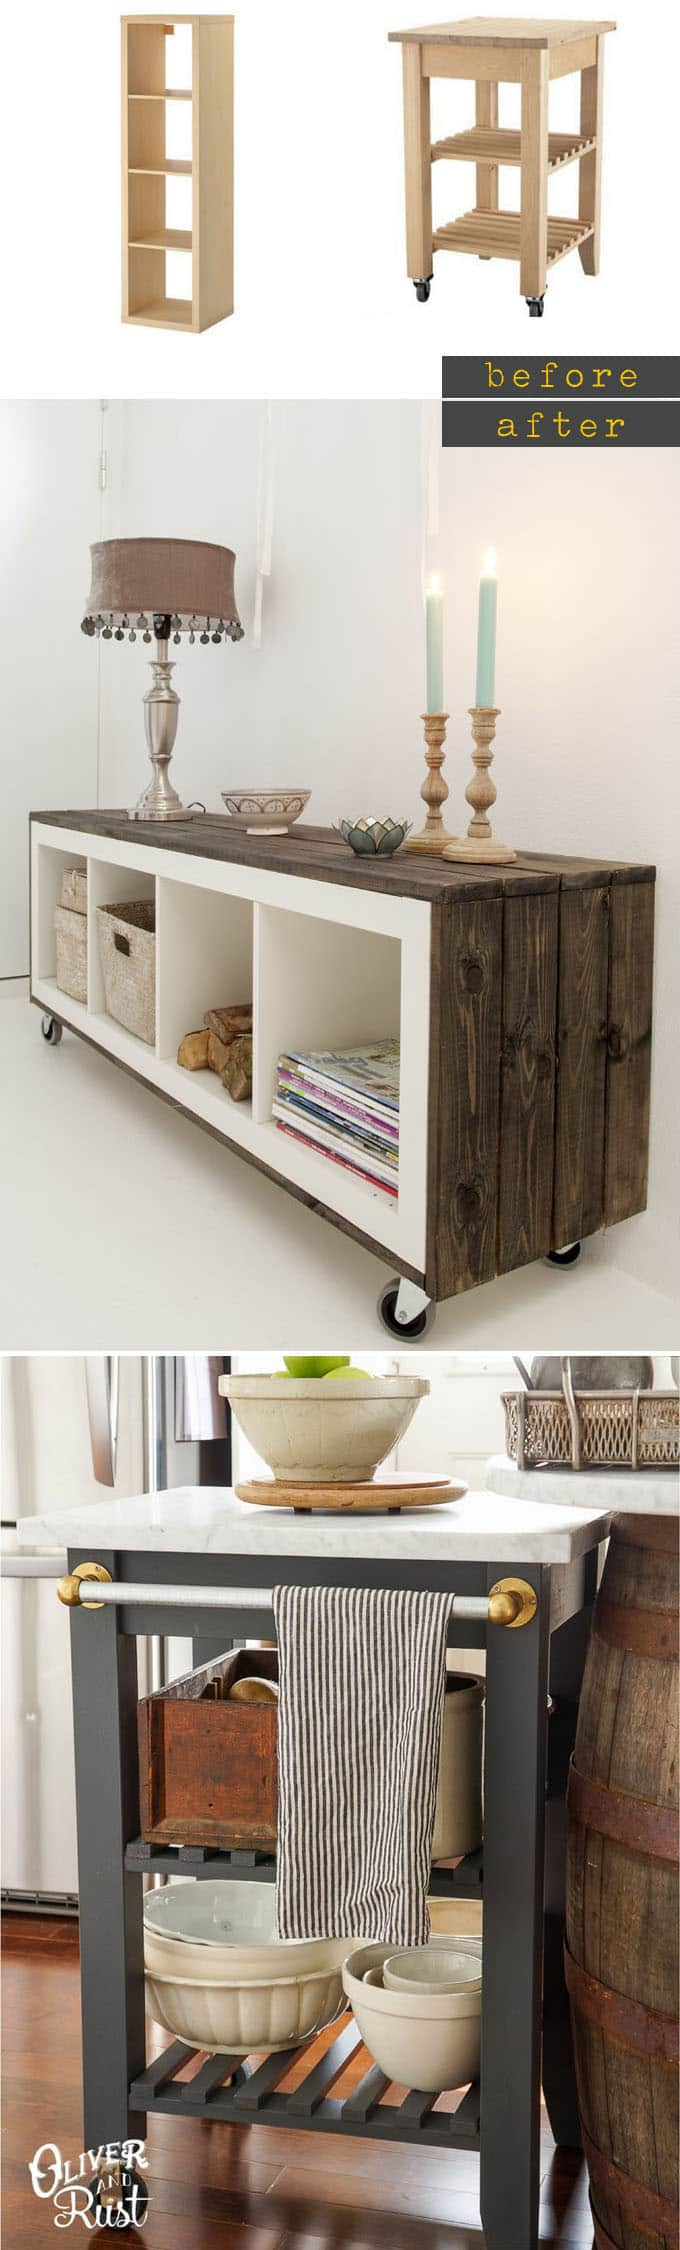 Ikea Hacks Easy Custom Furniture With 18 Amazing Ikea Hacks A Piece Of Rainbow